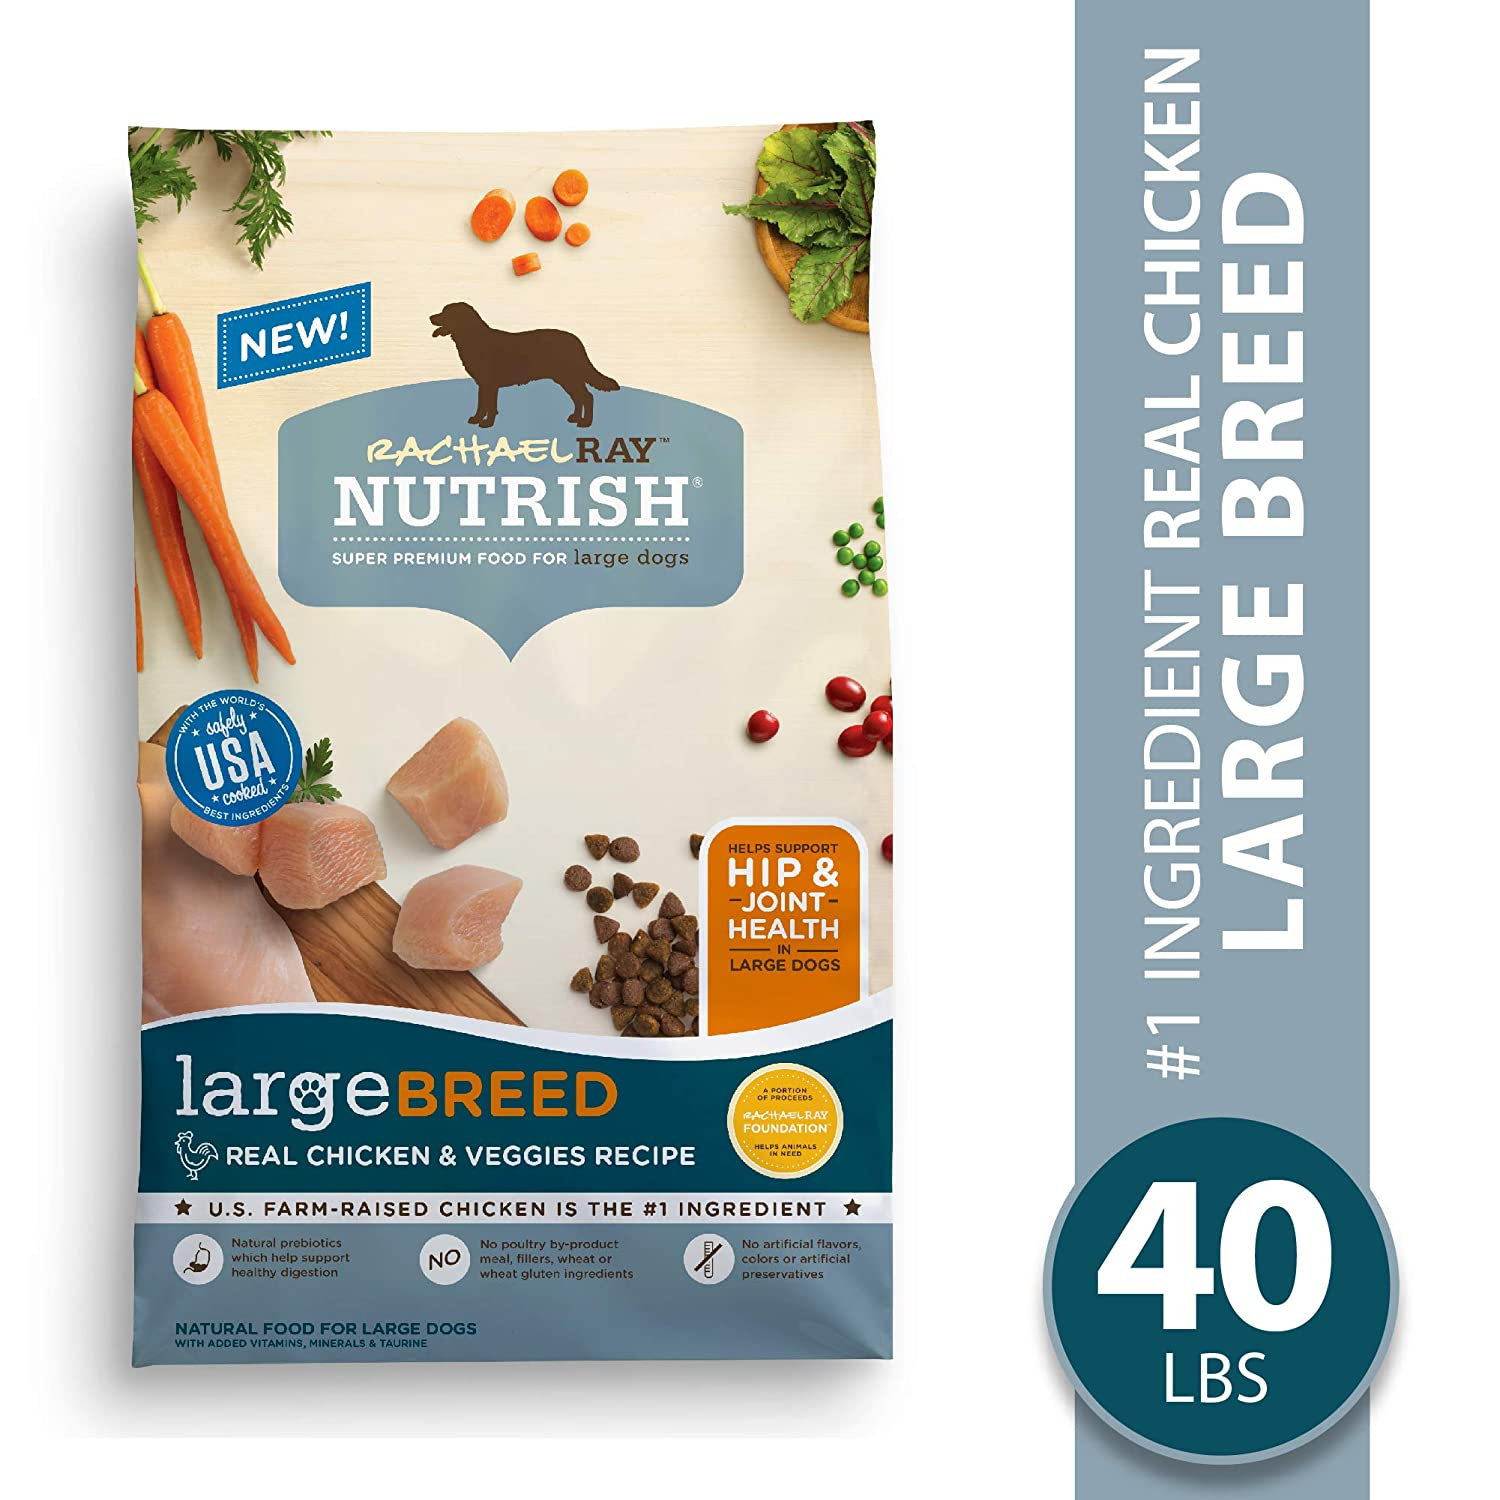 Rachael Ray Nutrish Dry Dog Food